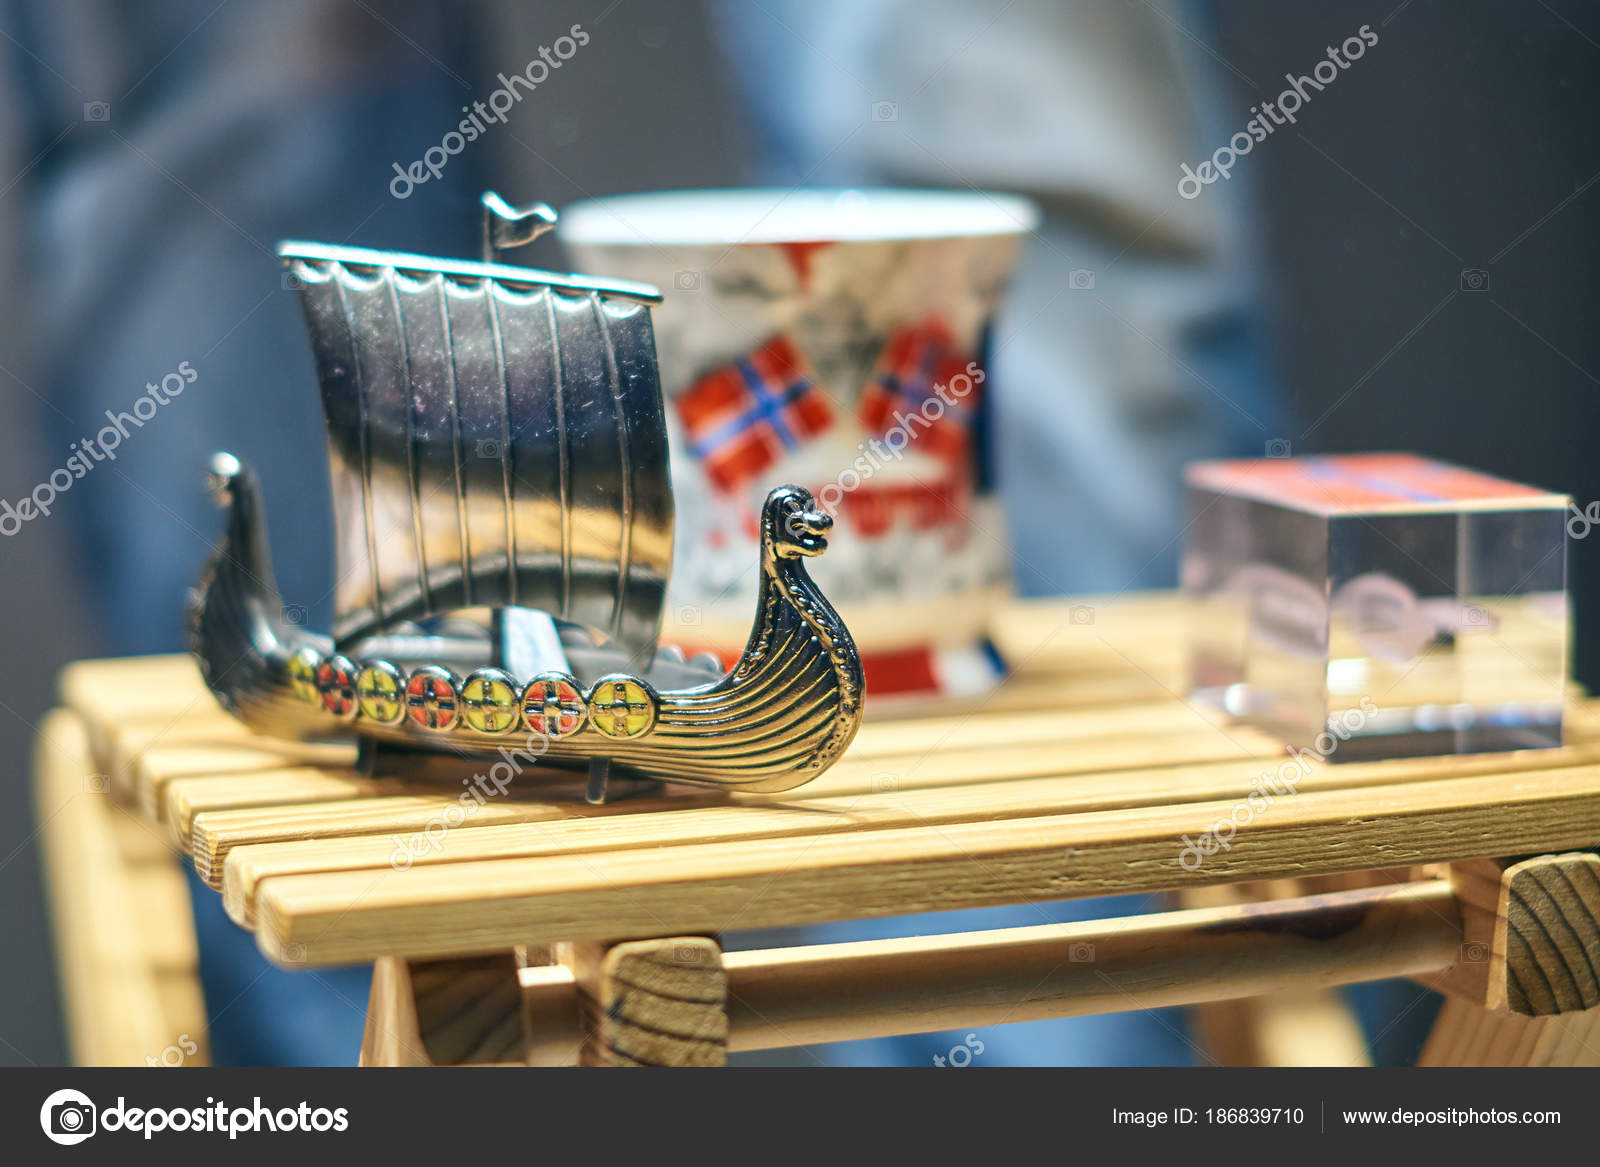 Metal Viking Toy Ship Also Known As Karve Or Knarr And Traditional